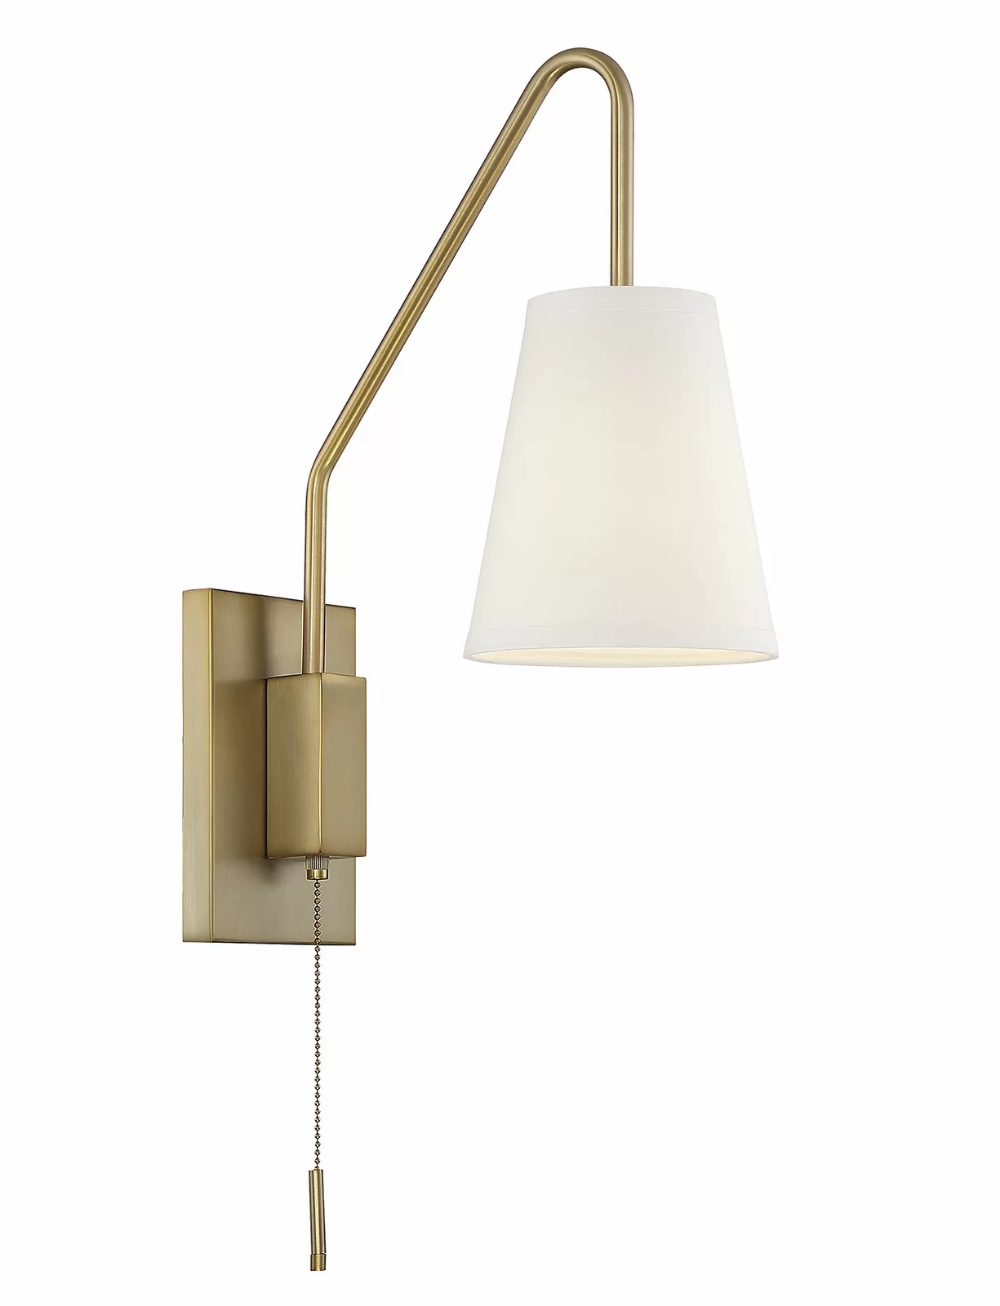 Keith 10 - Light Dimmable Plug-In Armed Sconce in 10  Wall